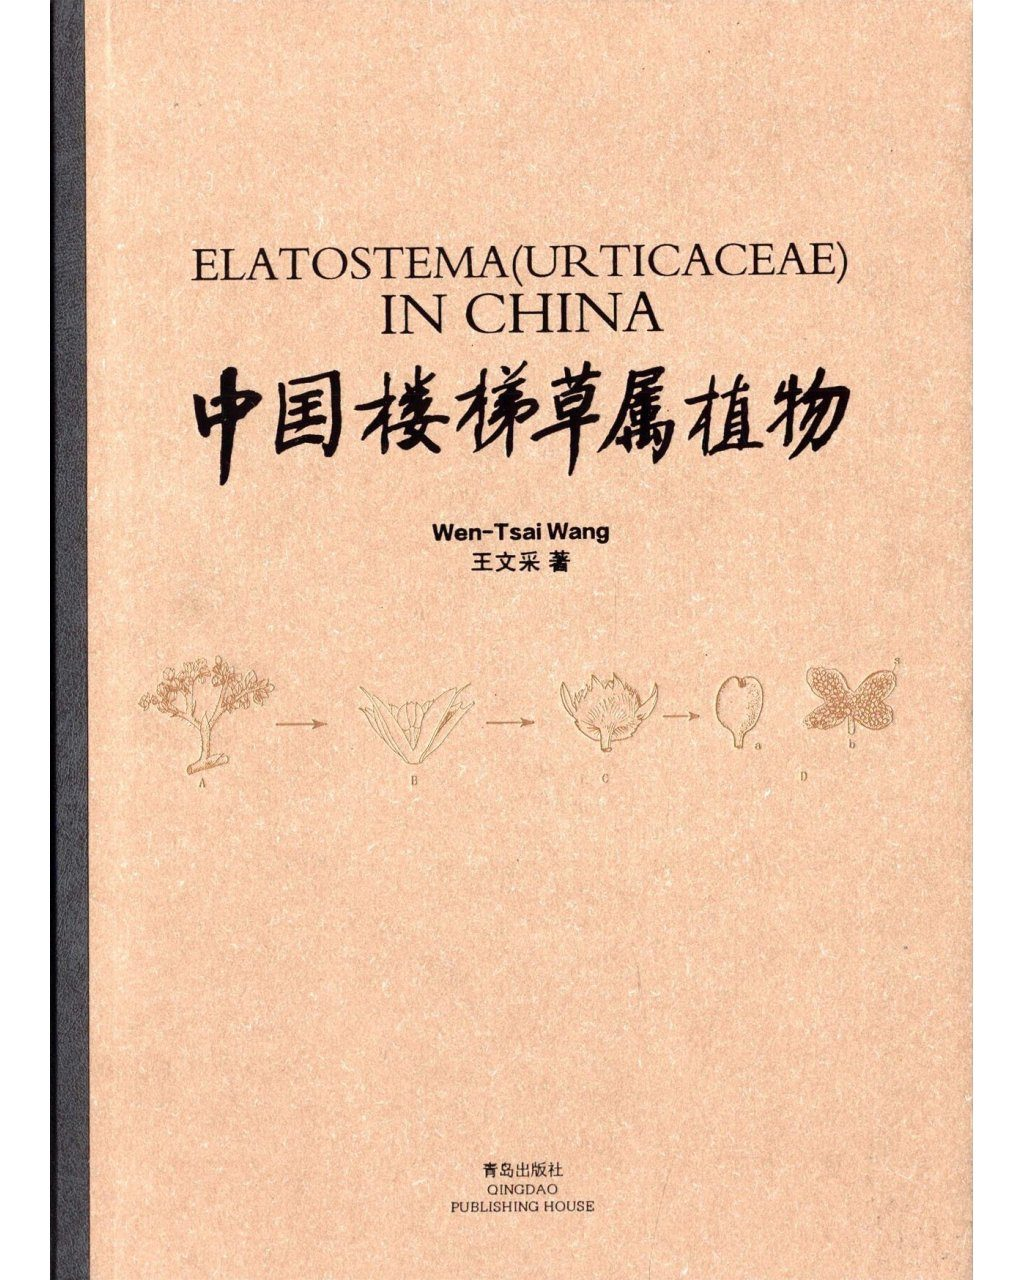 Elatostema (Urticaceae) in China